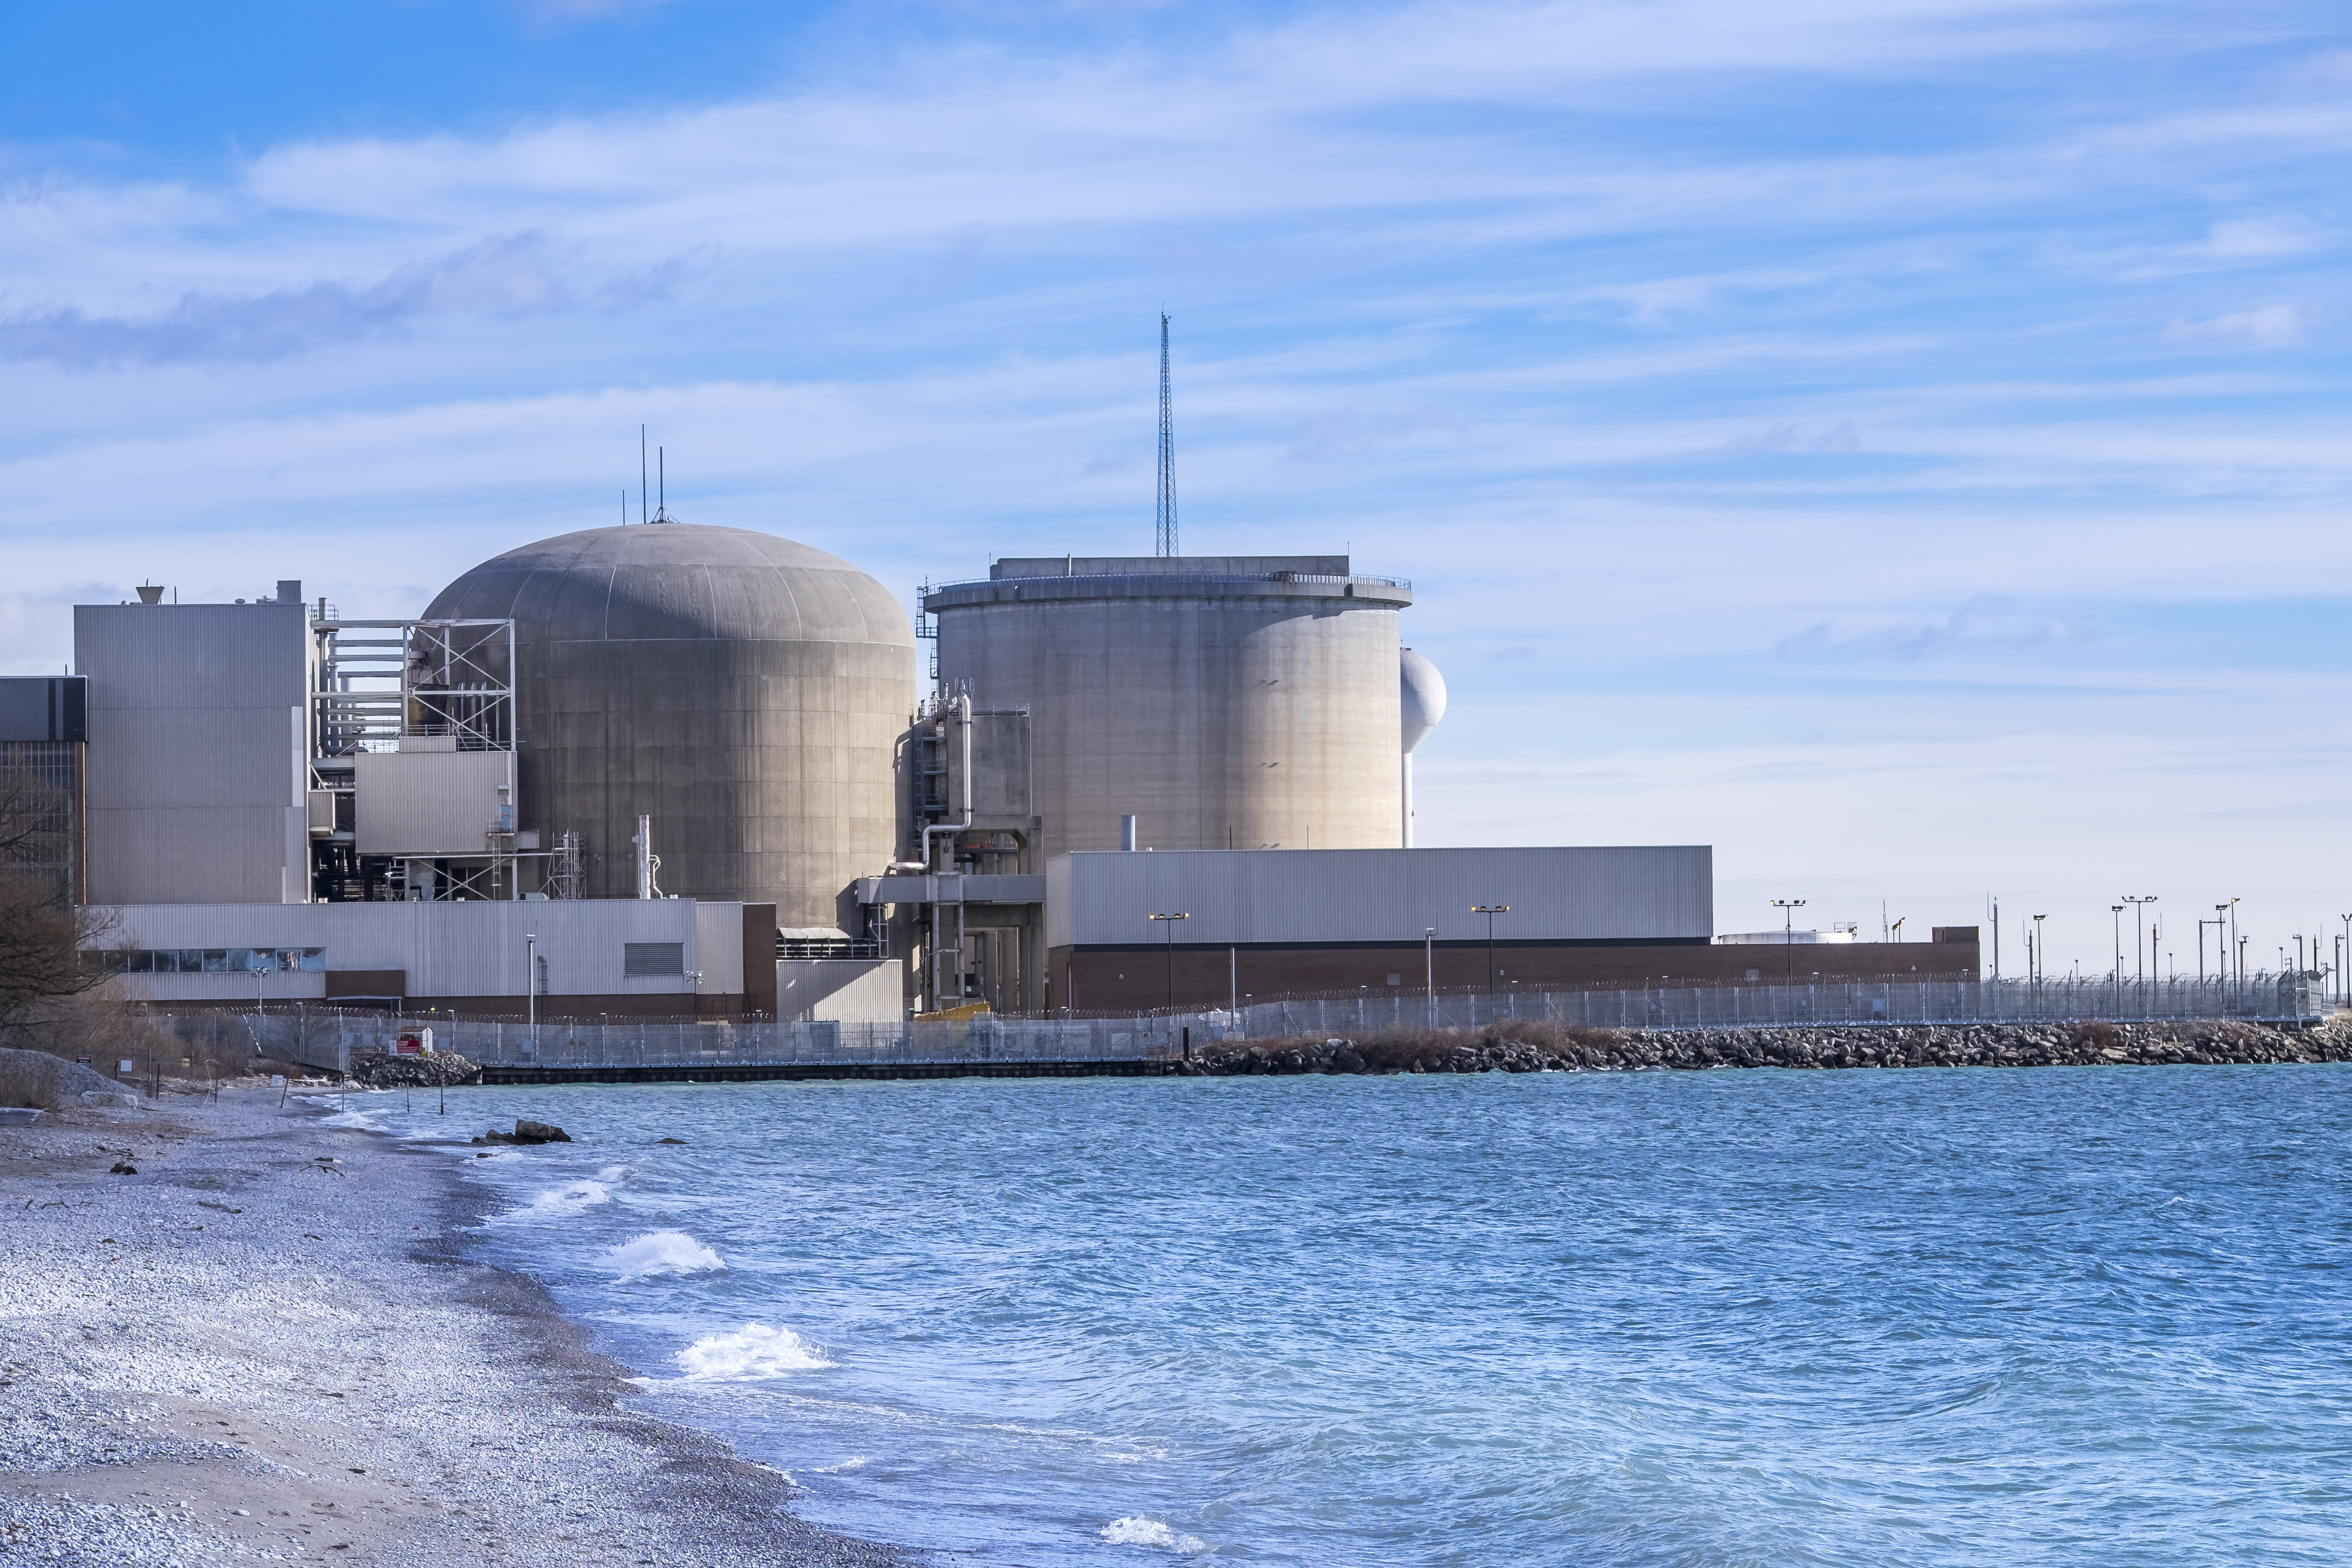 Picture of nuclear power plant